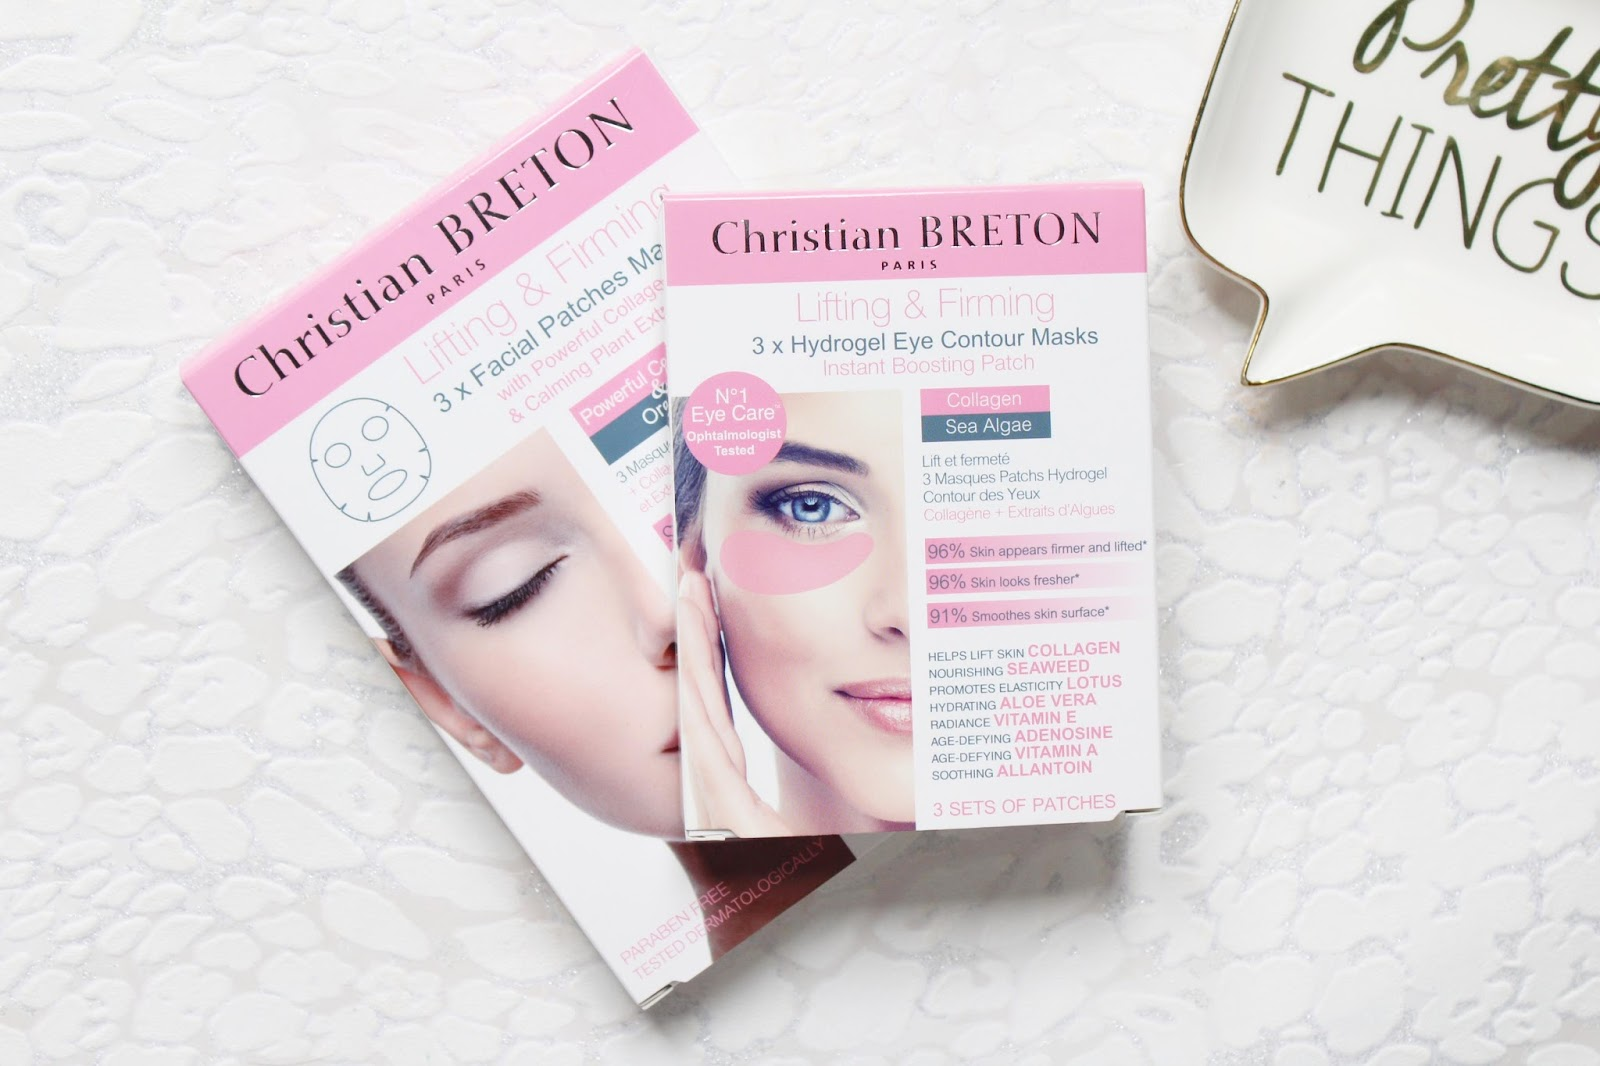 Christian BRETON Lifting & Firming Masks